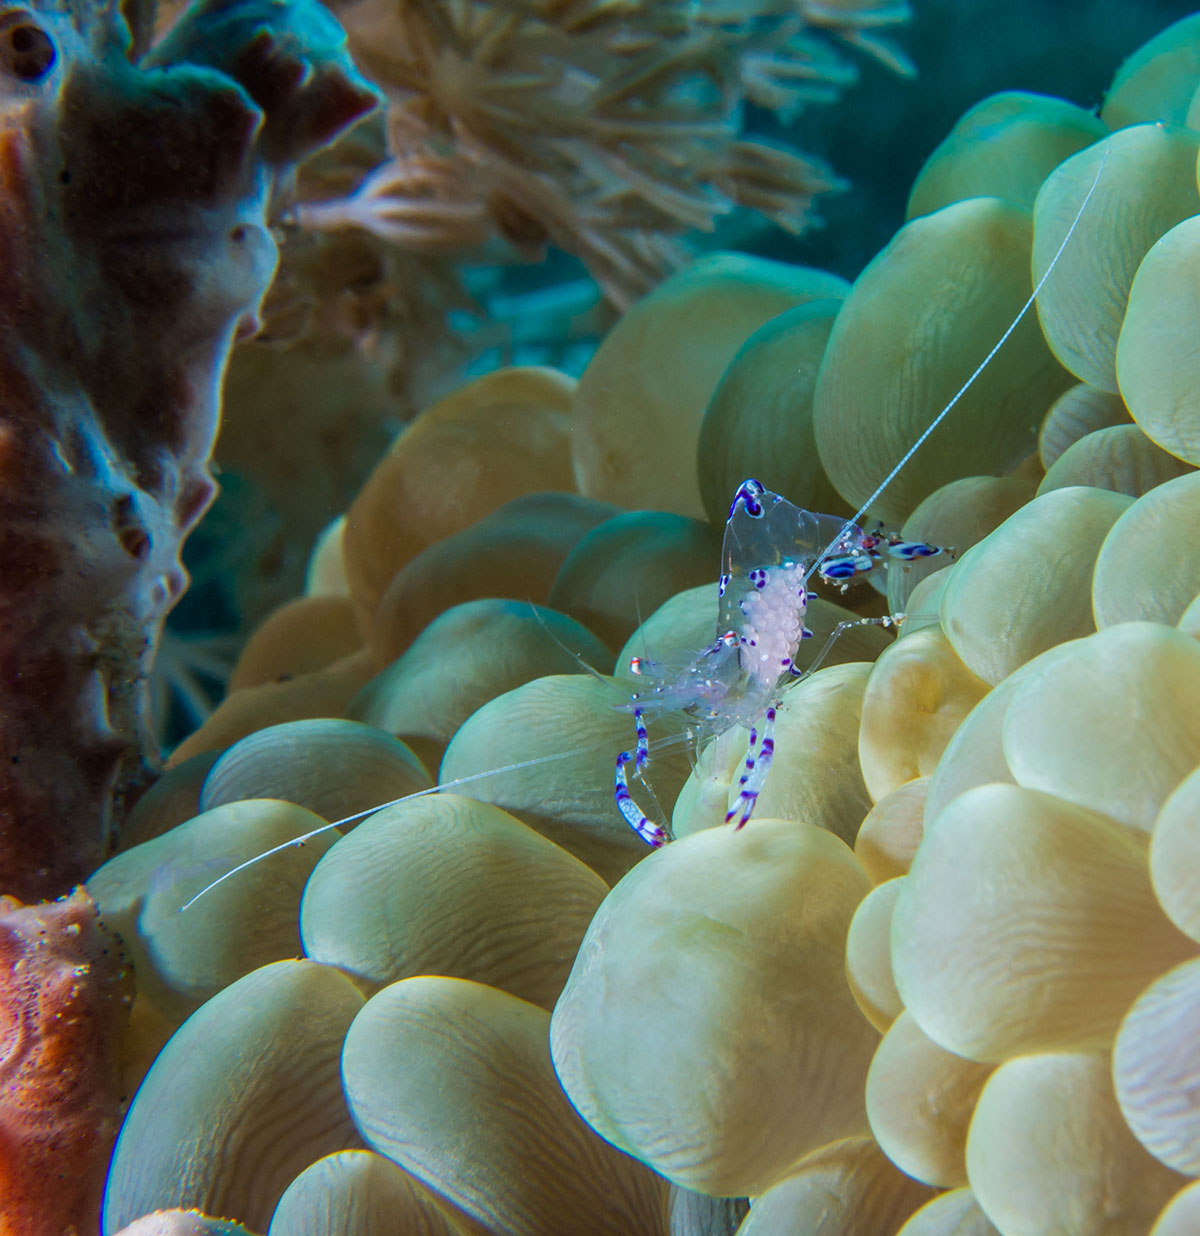 Indonesia, Manado, Bunaken Island, Diving, Anemone Shrimp with Eggs